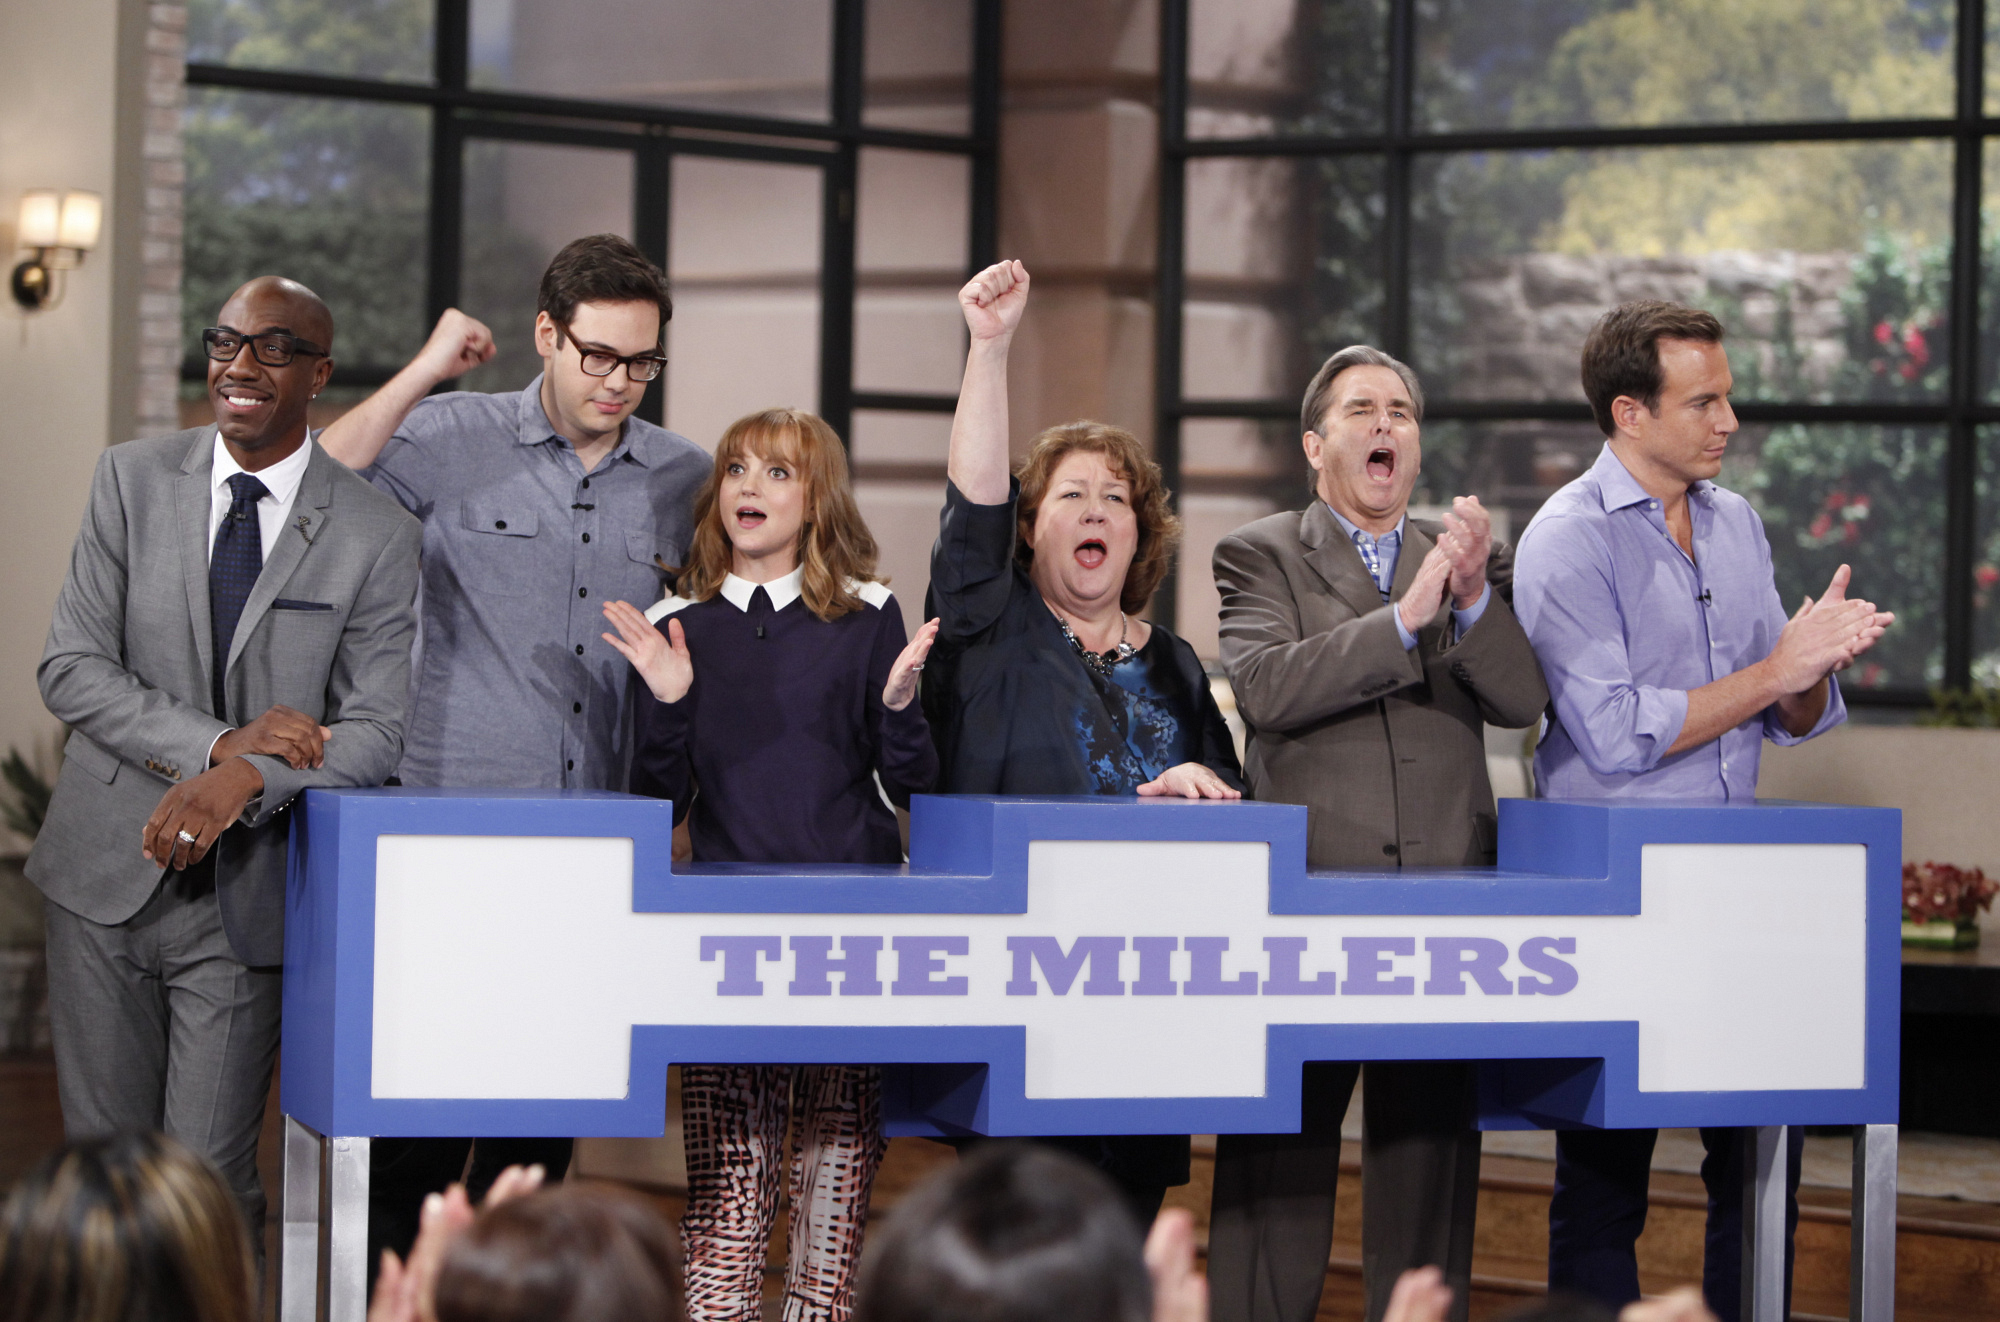 6. JB Smoove, Nelson Franklin, Jayma Mays, Margo Martindale, Beau Bridges and Will Arnett - The Millers